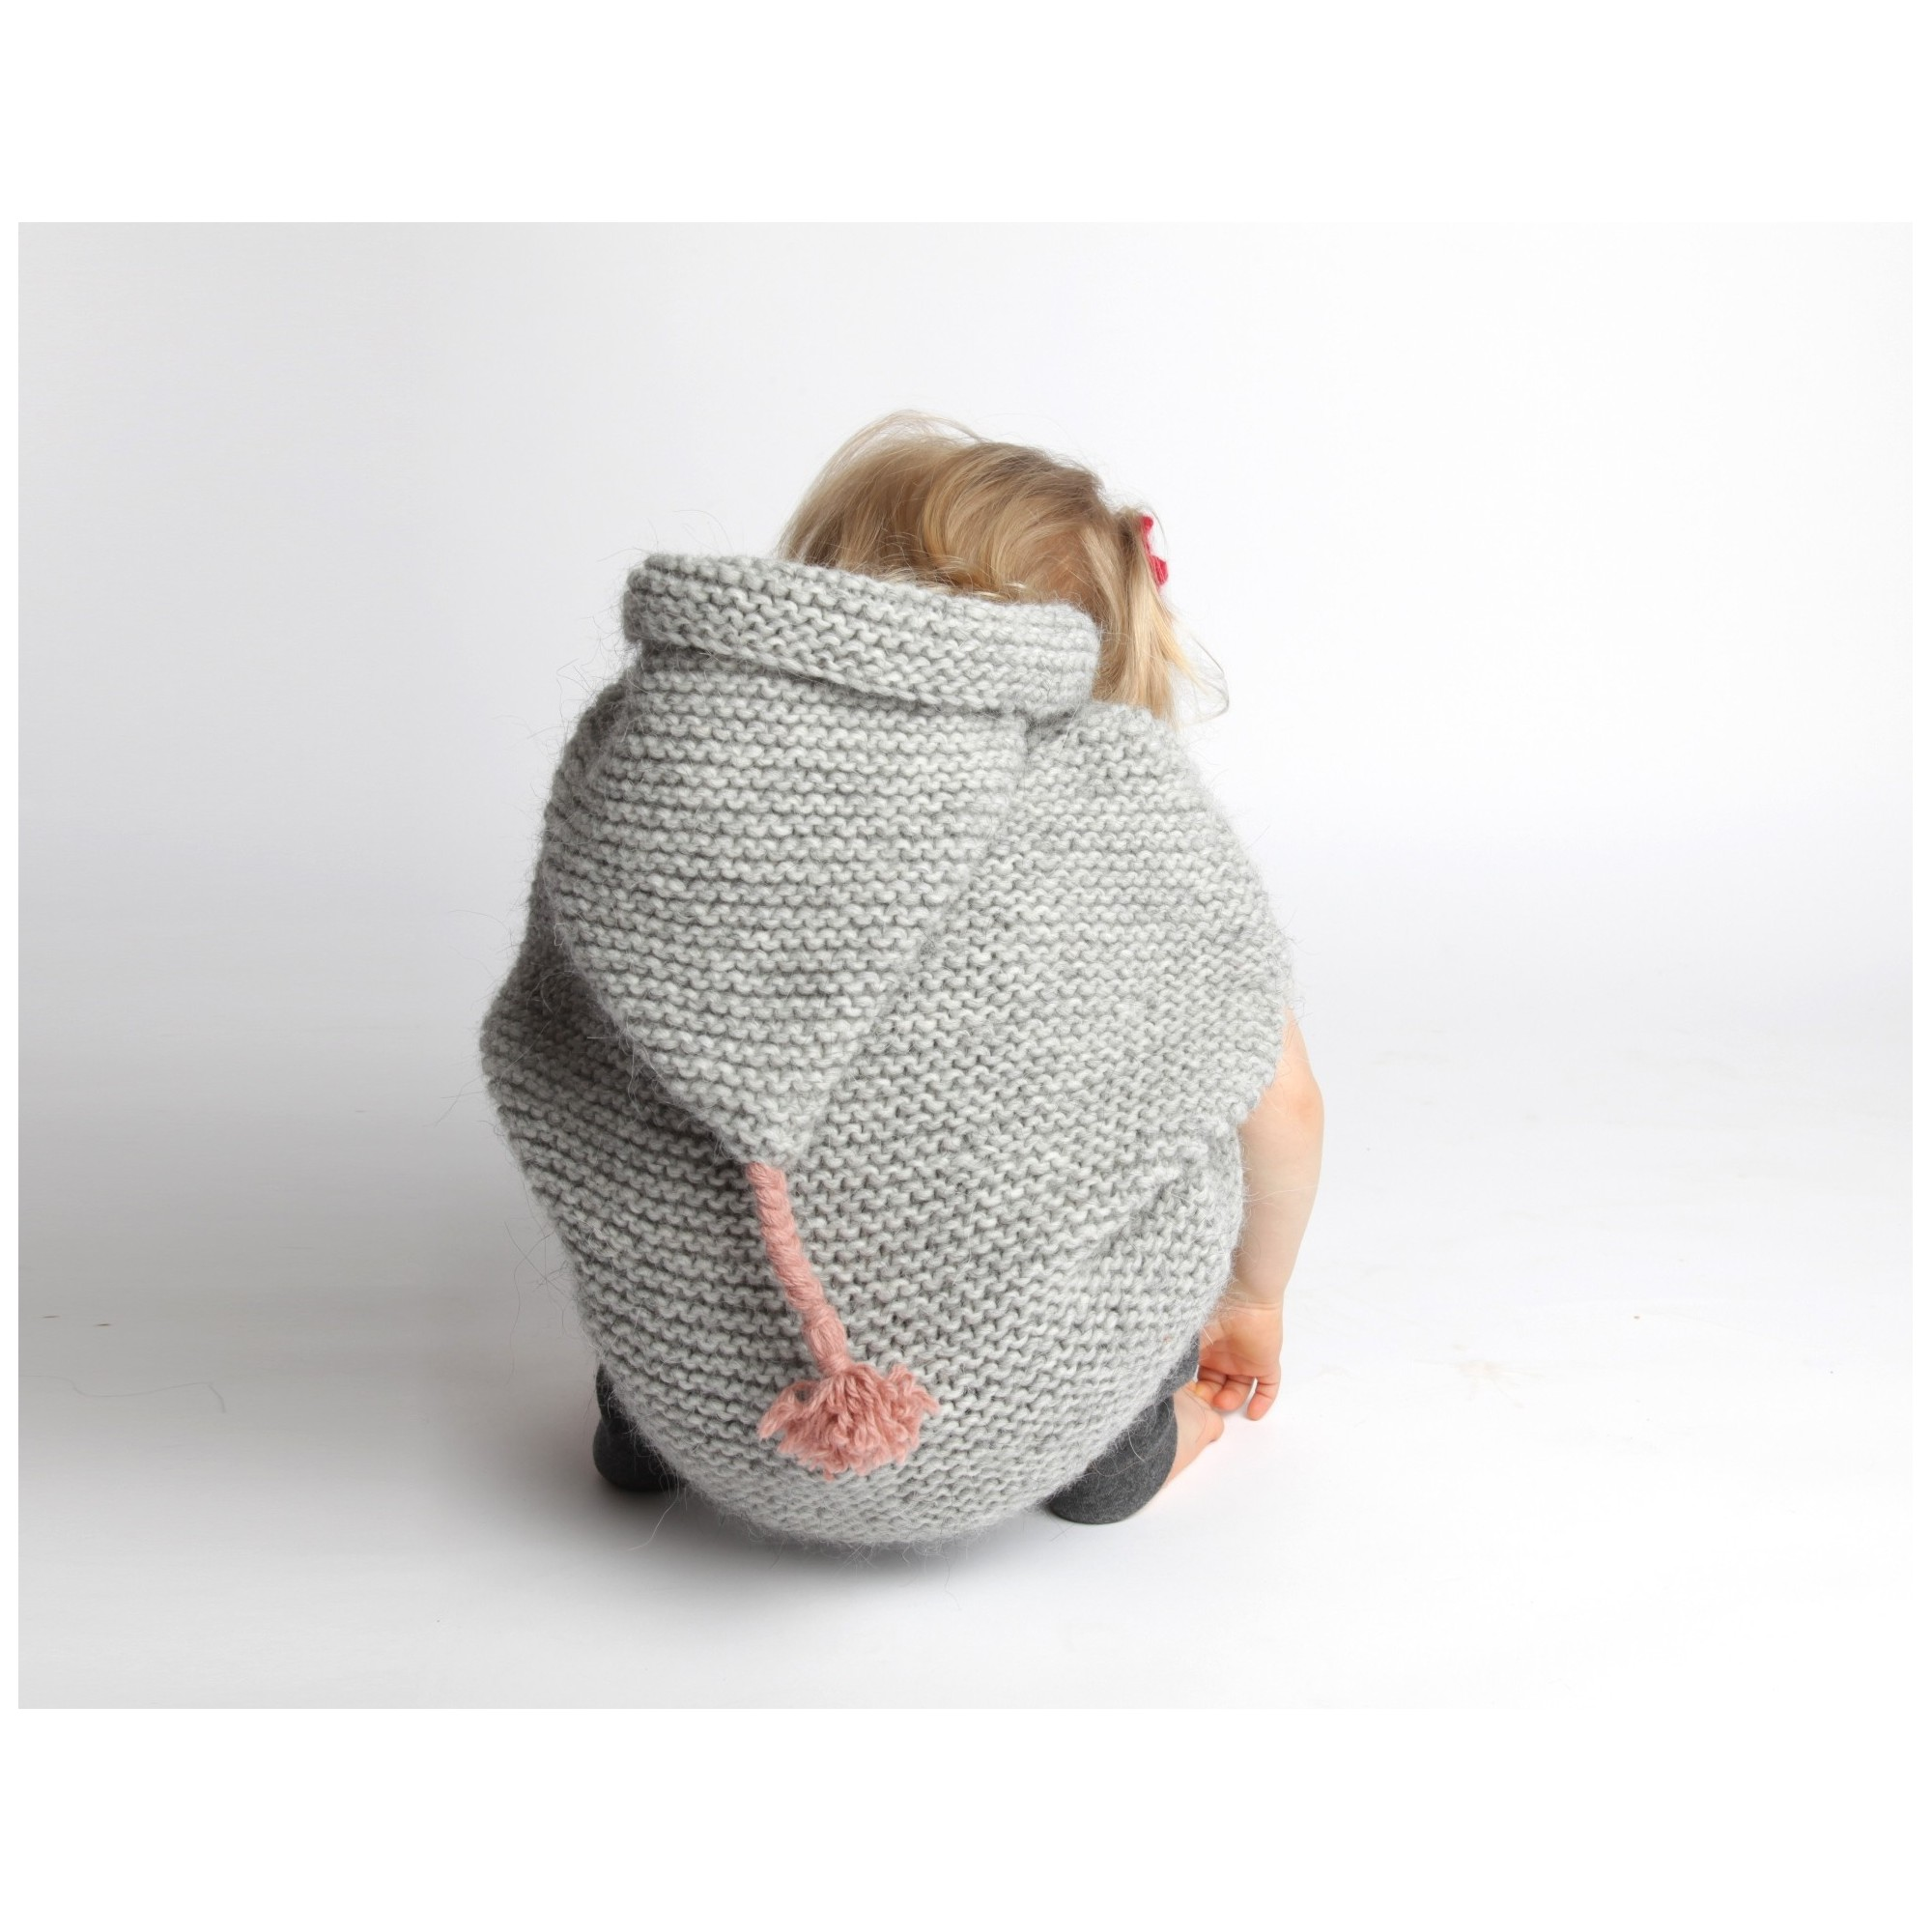 Grey baby cape knitted in garter stitch made from wool and alpaca - back 2